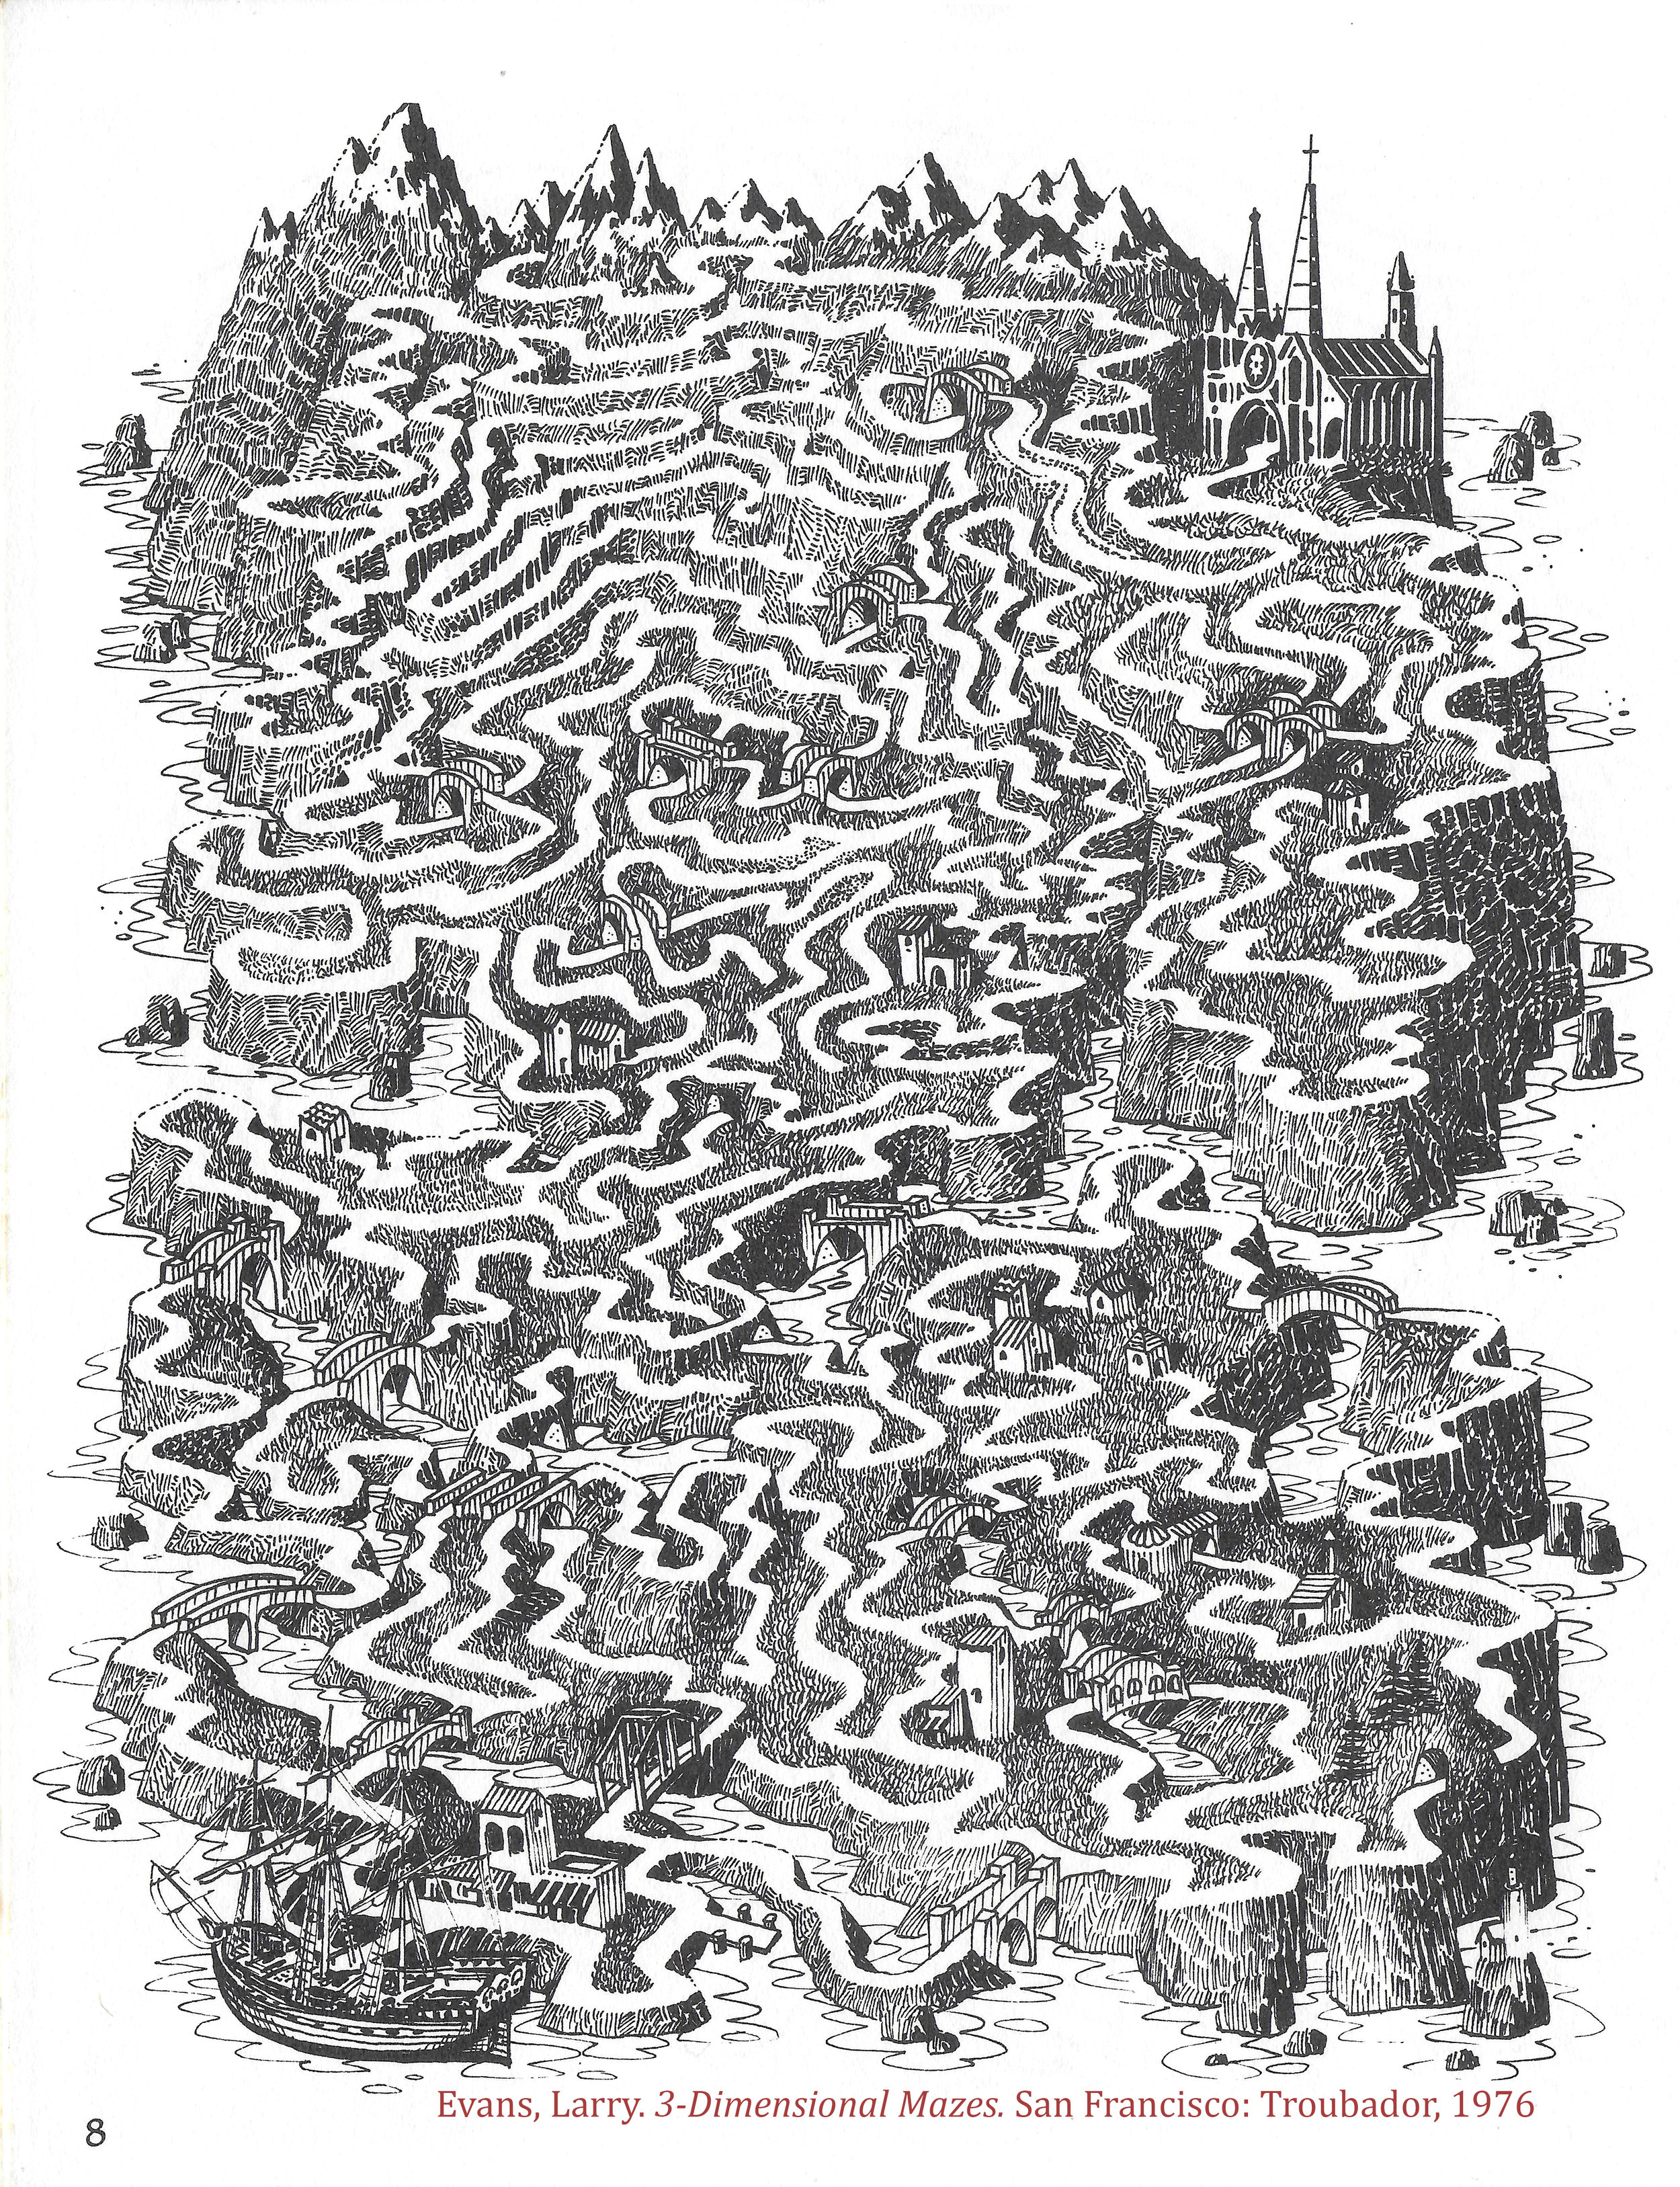 Evans did a few landscape mazes like this one. These were a huge influence!  I have since met a collector of Larry Evans originals. He sent me some photos of the works in his collection that included pieces I've never seen.